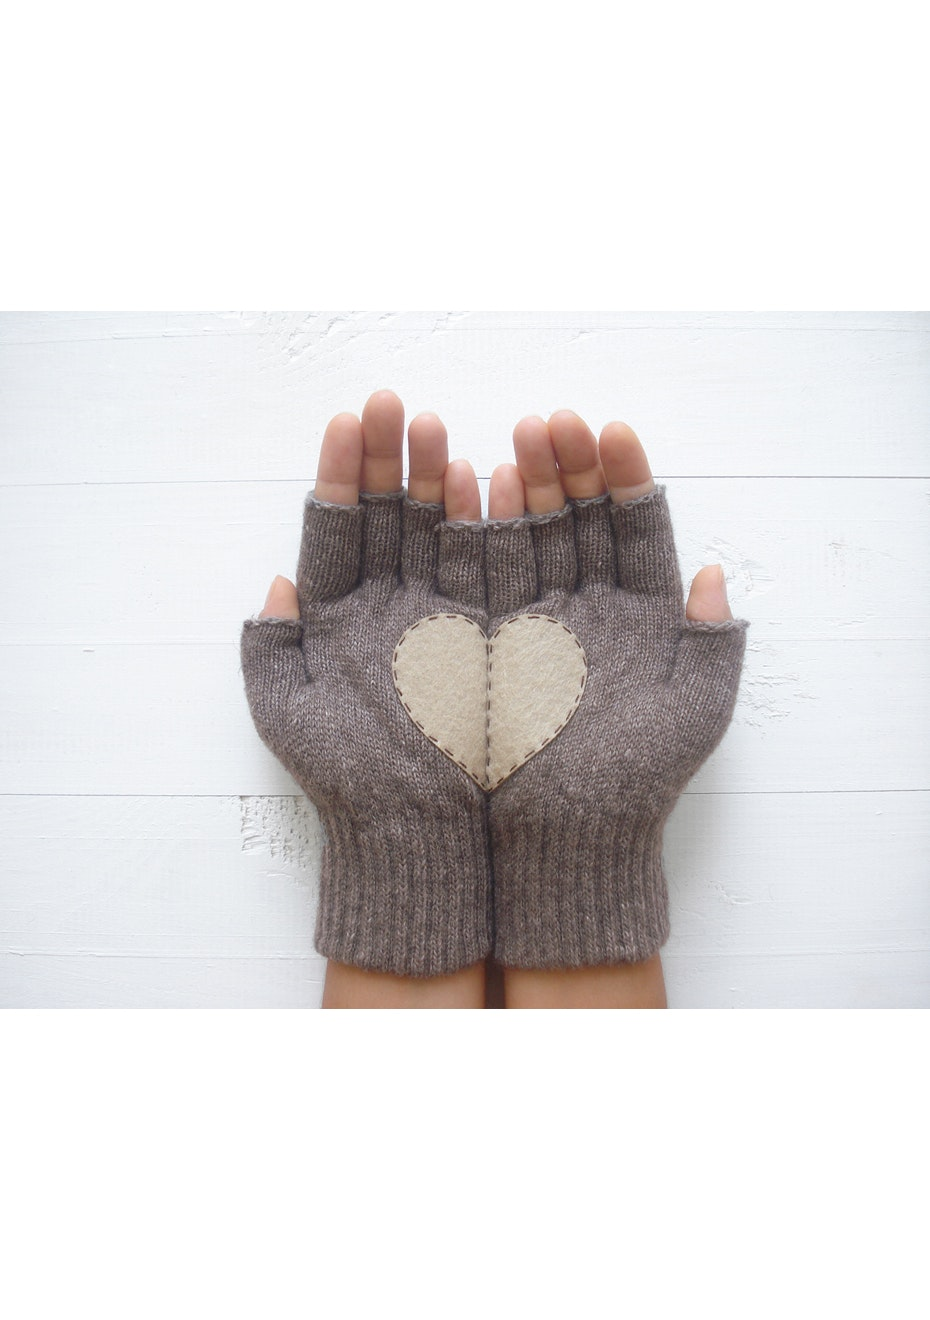 Heart Fingerless Gloves - Fawn/Taupe